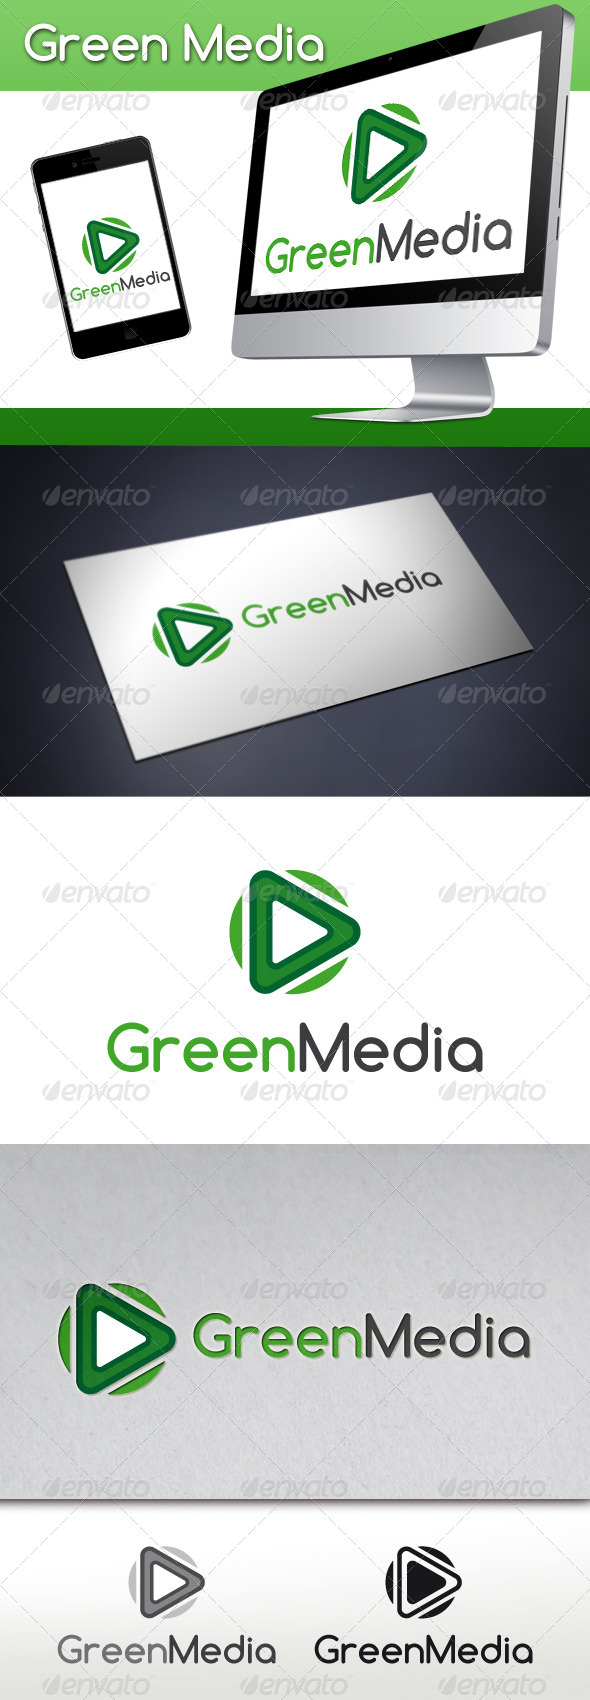 GraphicRiver Green Media Logo Template 3567721